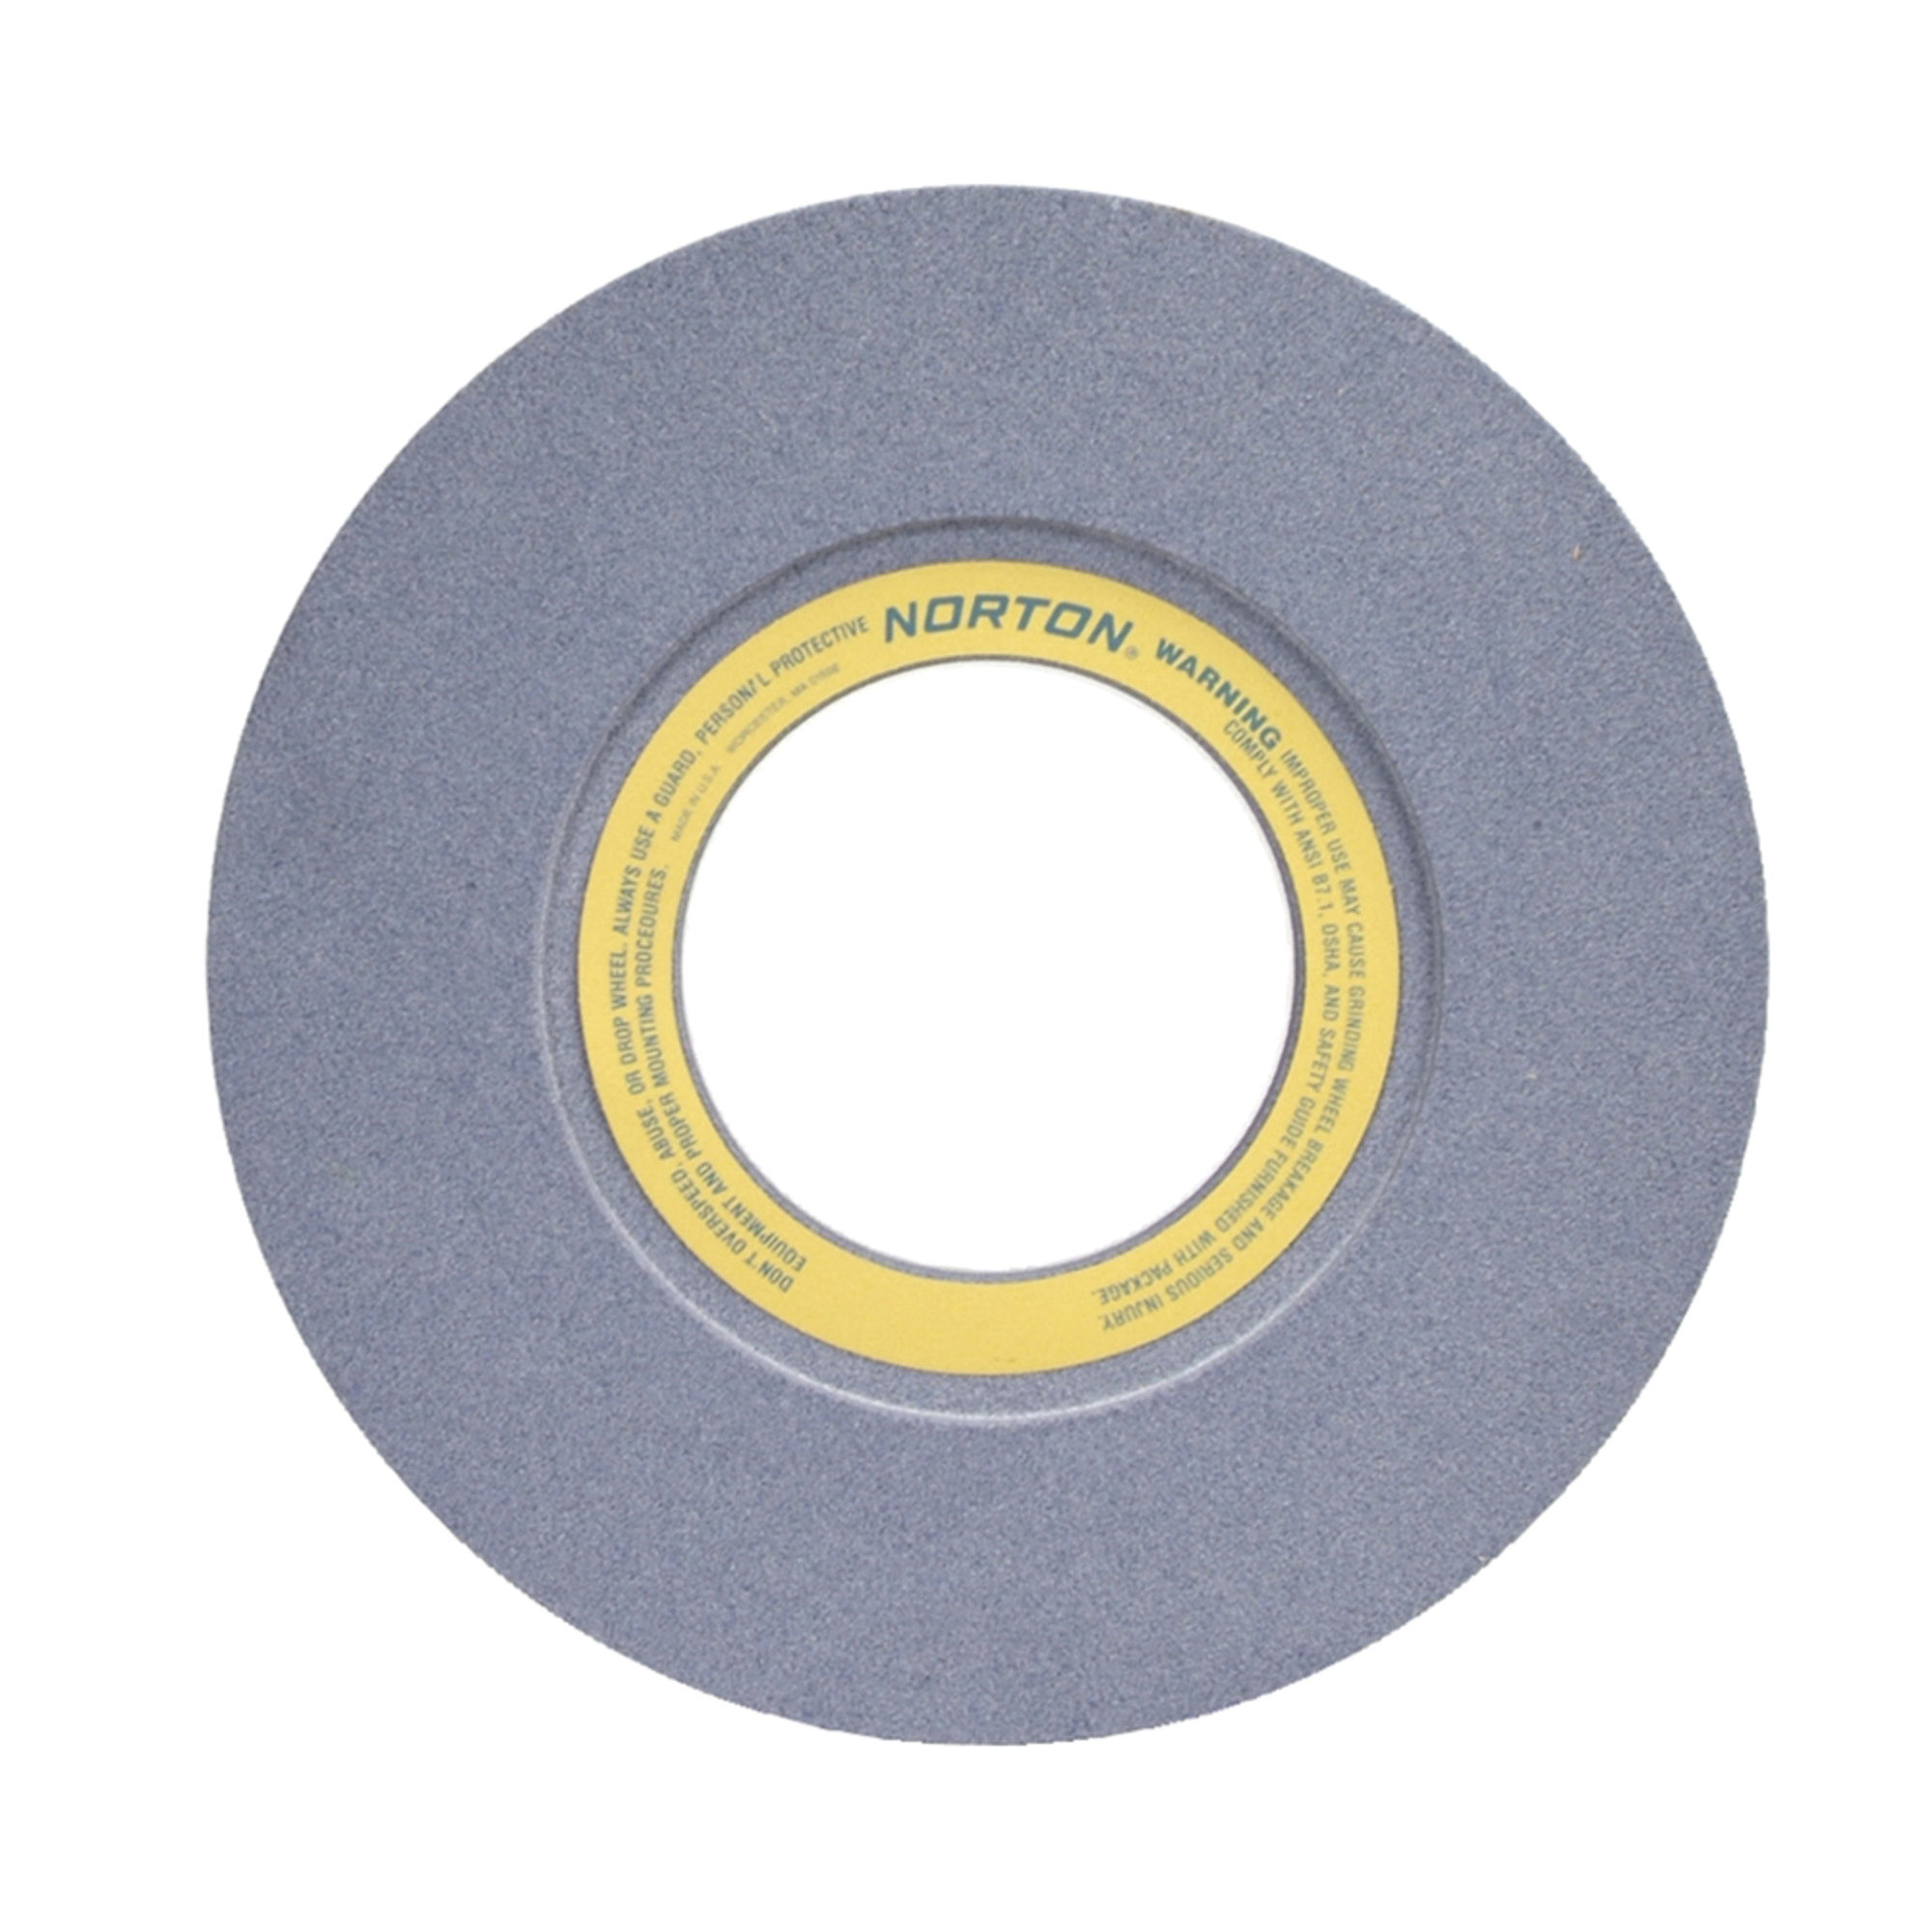 Norton® 66253464995 32A Straight Surface and Cylindrical Grinding Wheel, 16 in Dia x 2 in THK, 5 in Center Hole, 46 Grit, Aluminum Oxide Abrasive